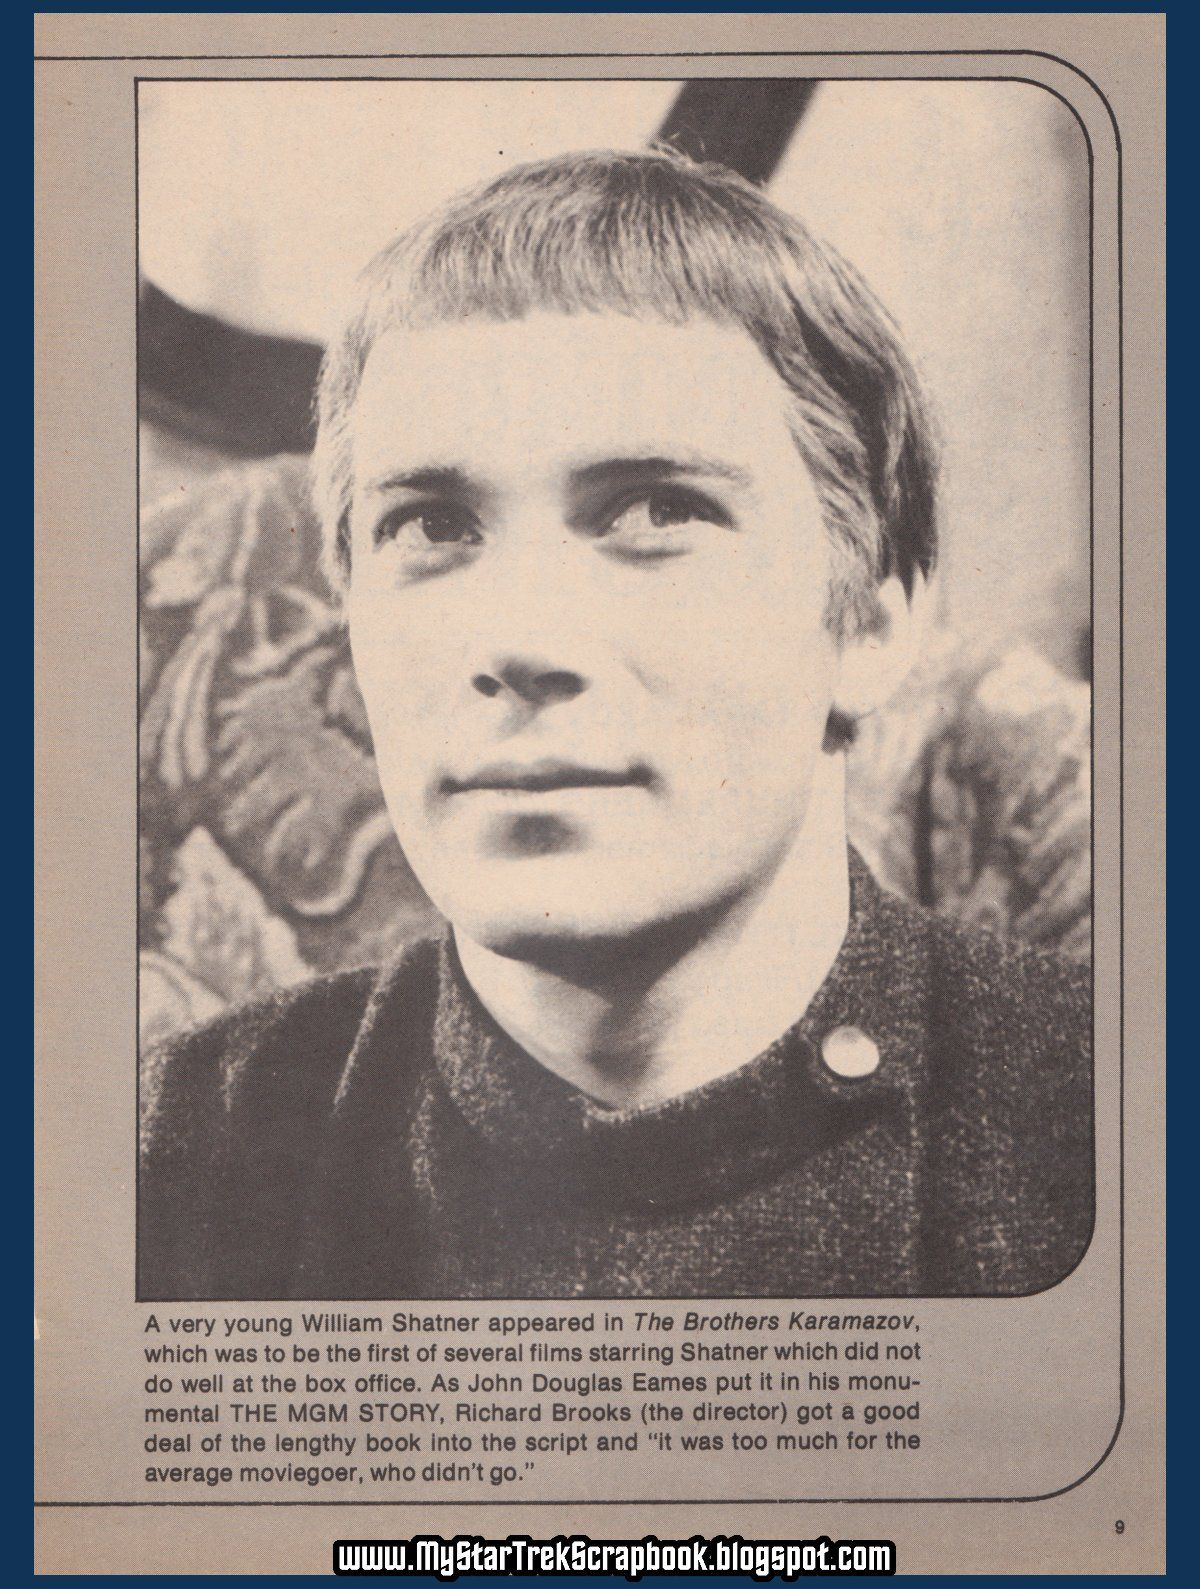 A very young William Shatner in The Brothers Karamazov | Star trek ...